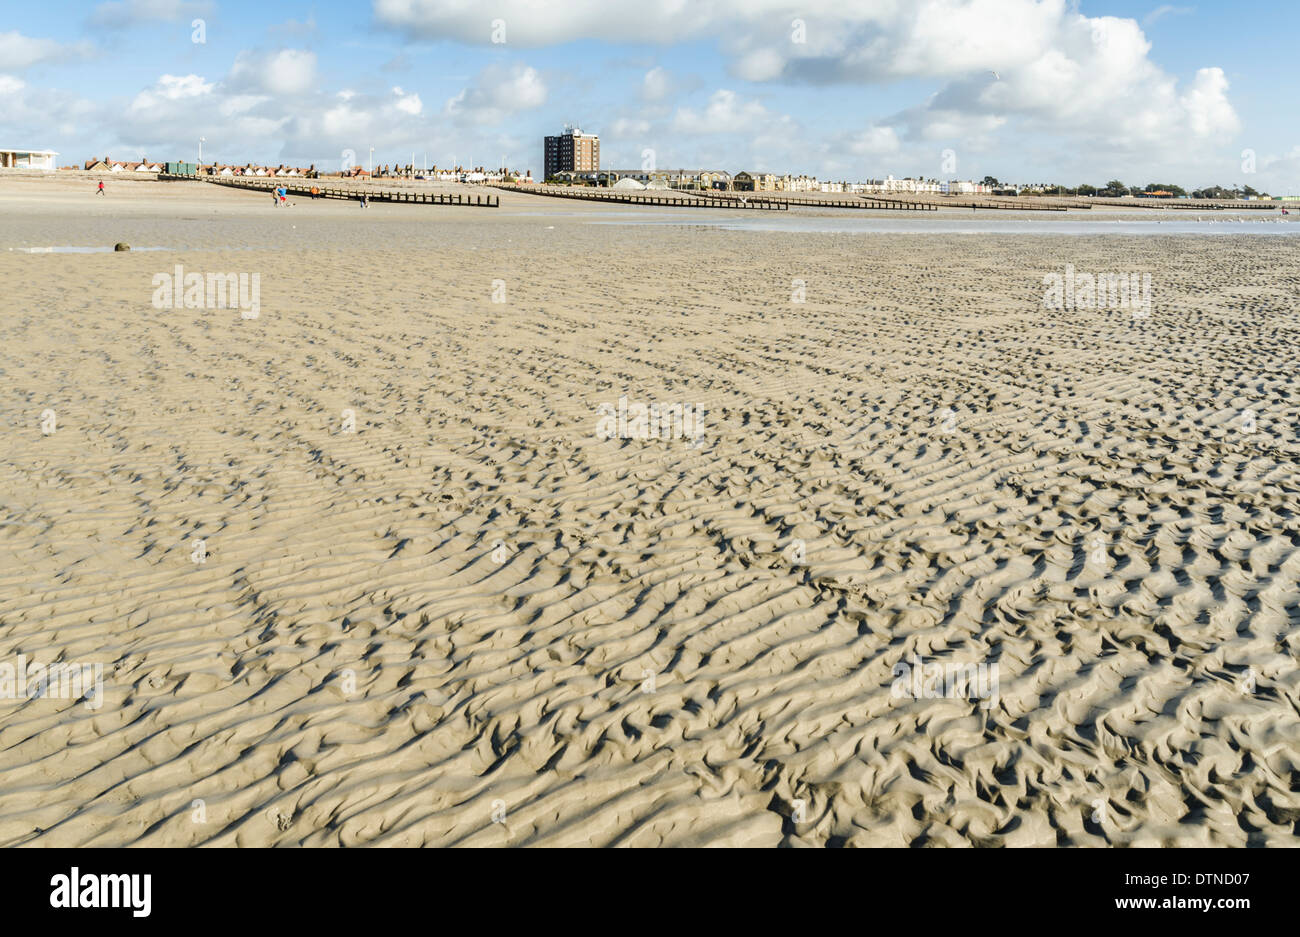 Ripples in the sand on an empty sandy beach. - Stock Image